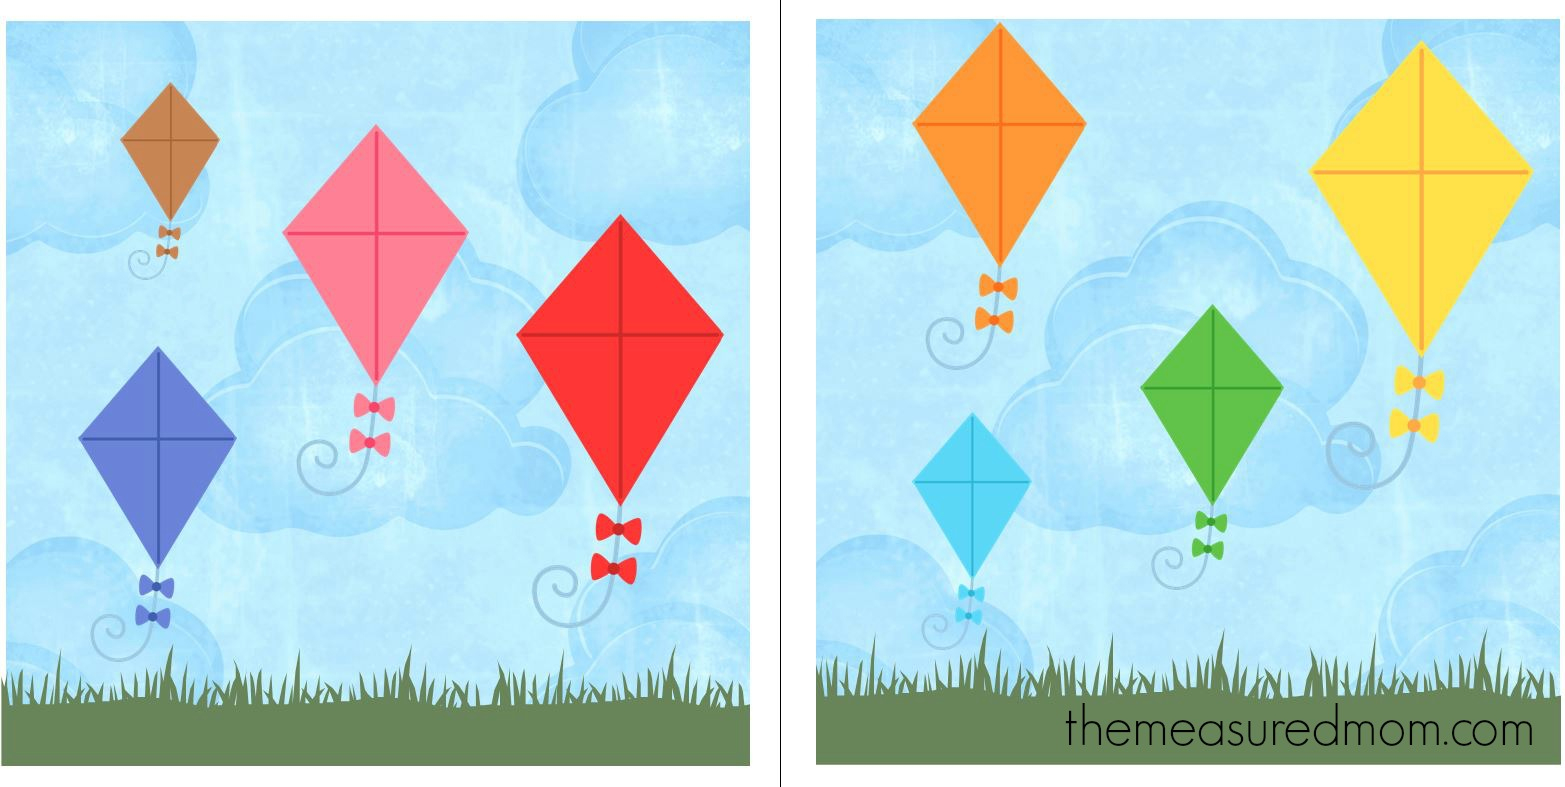 Free File Folder Game For Preschoolers: Kites! - The Measured Mom - Free Printable File Folder Games